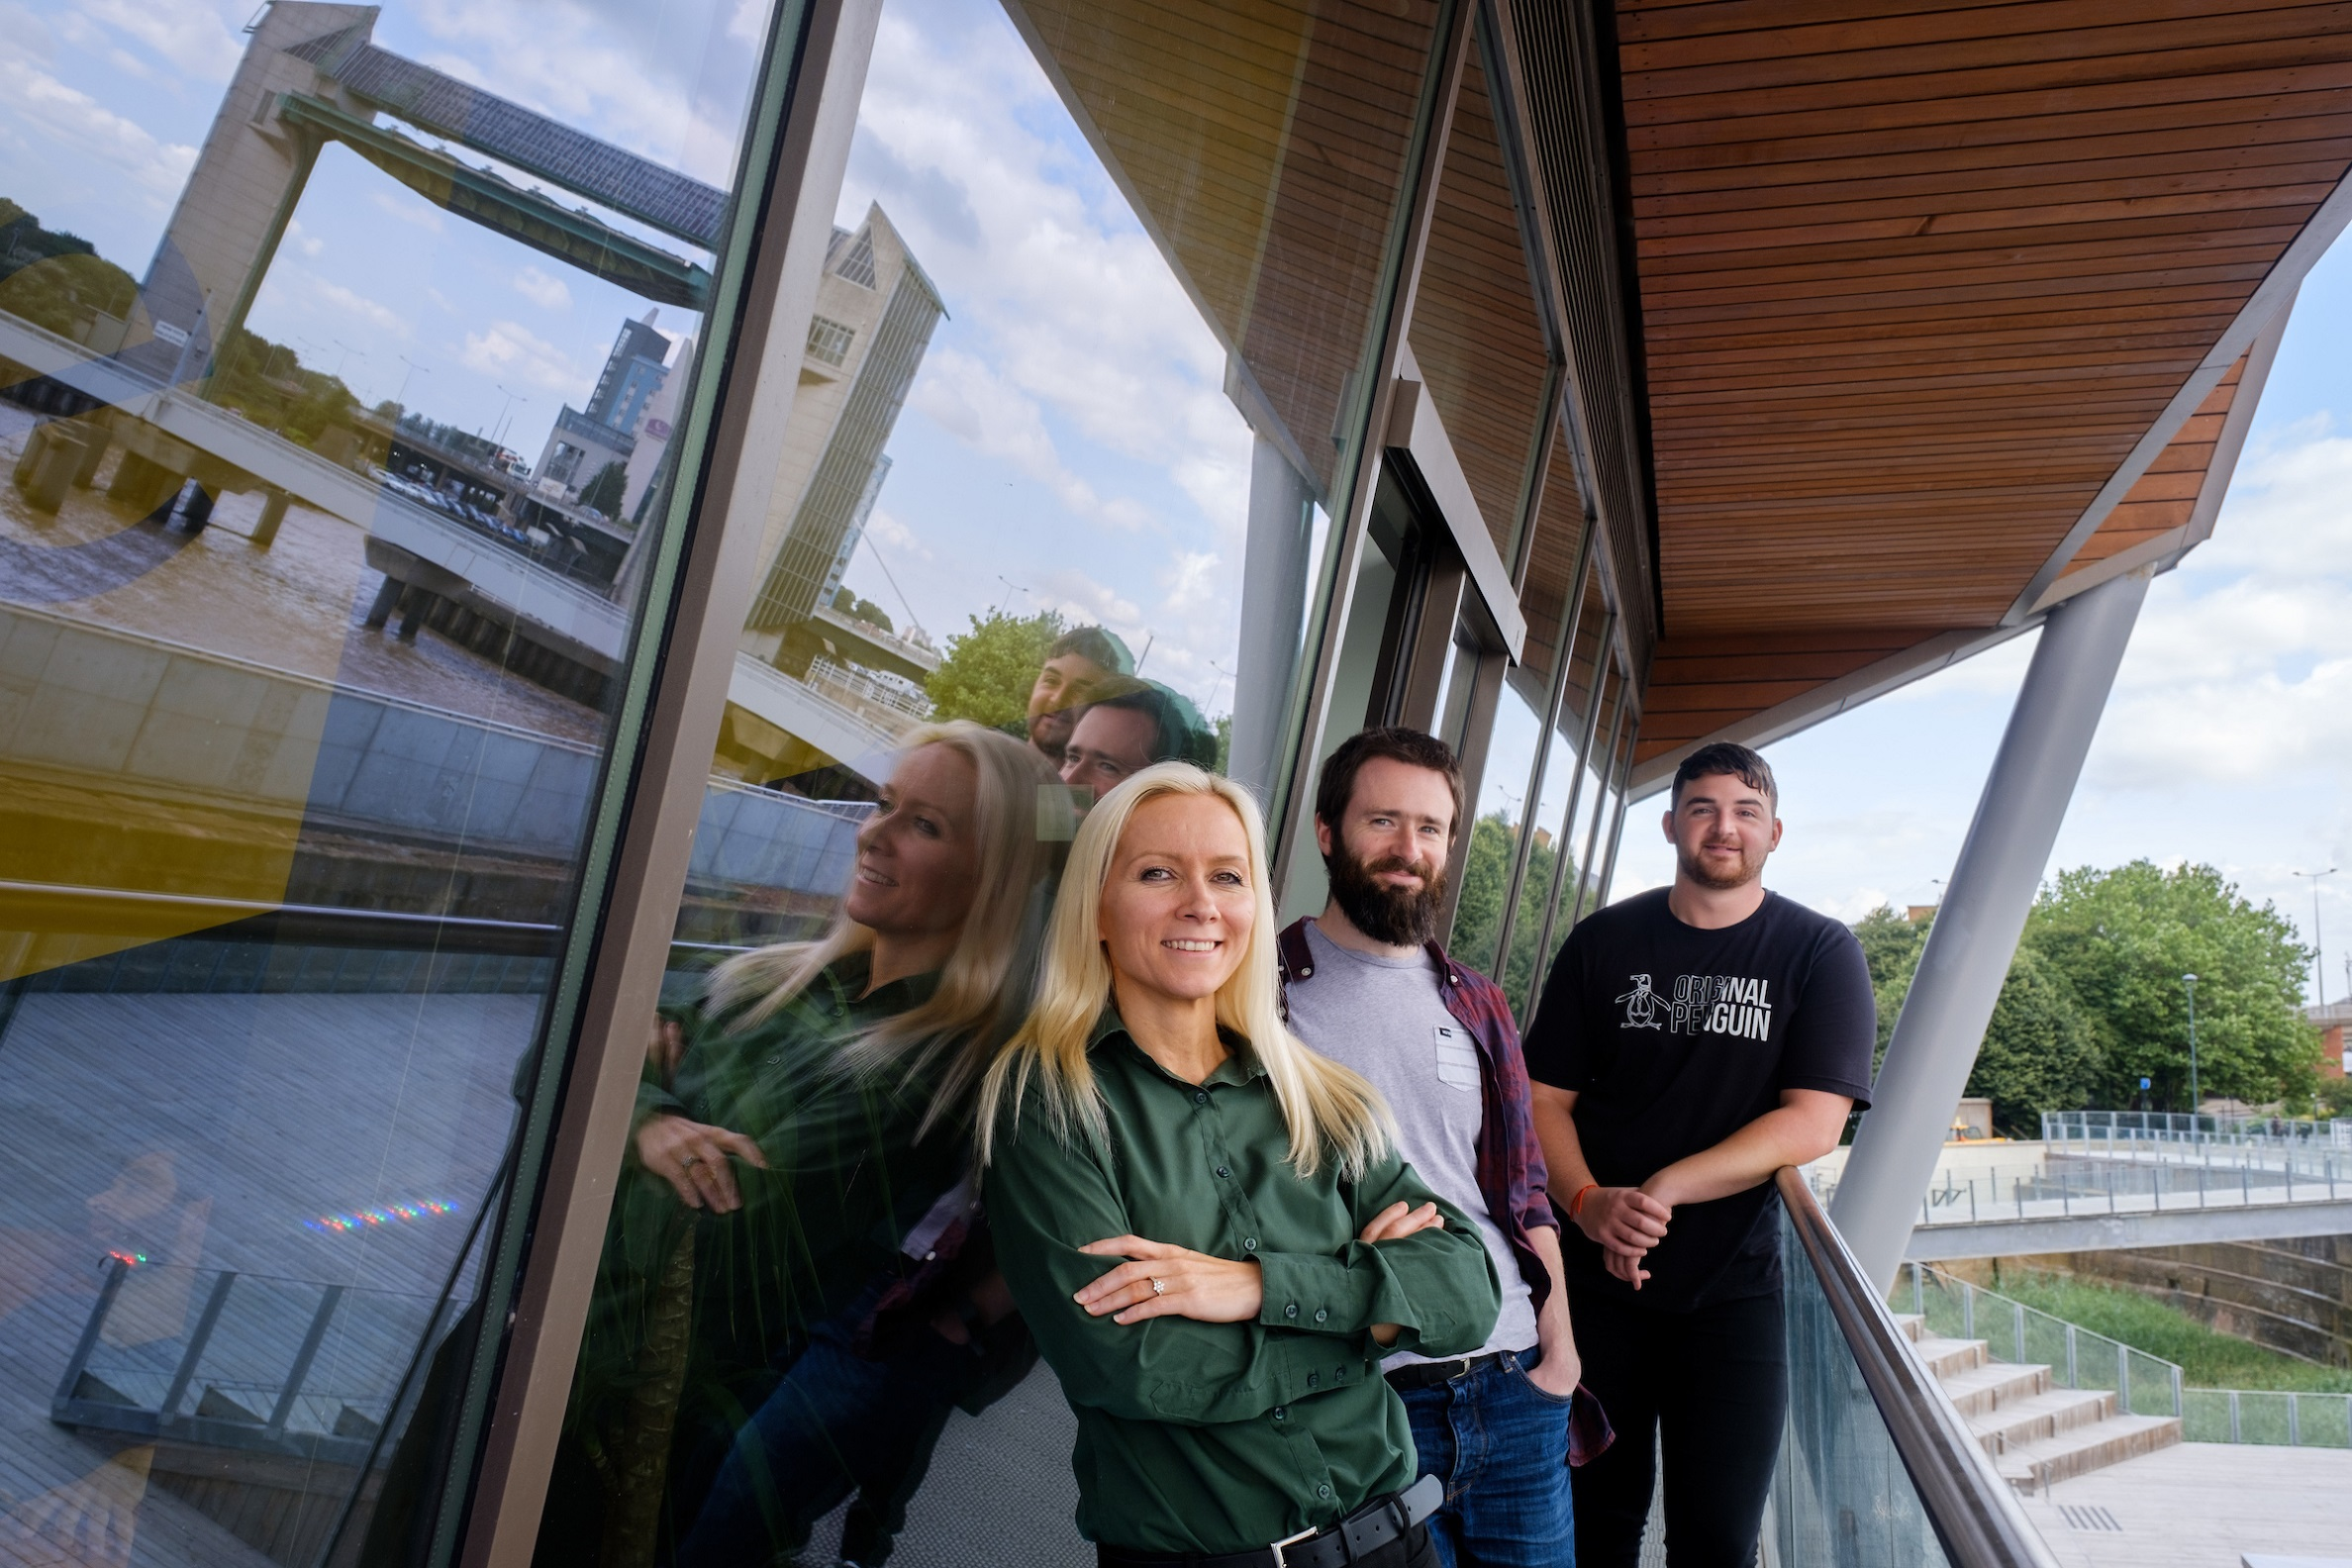 Sauce team members outside their office at the C4DI tech hub overlooking Hull's waterfront, from left, Director of Development Claire Clark, Lead Developer Aidan Treasure and Developer Danny Wilkinson.